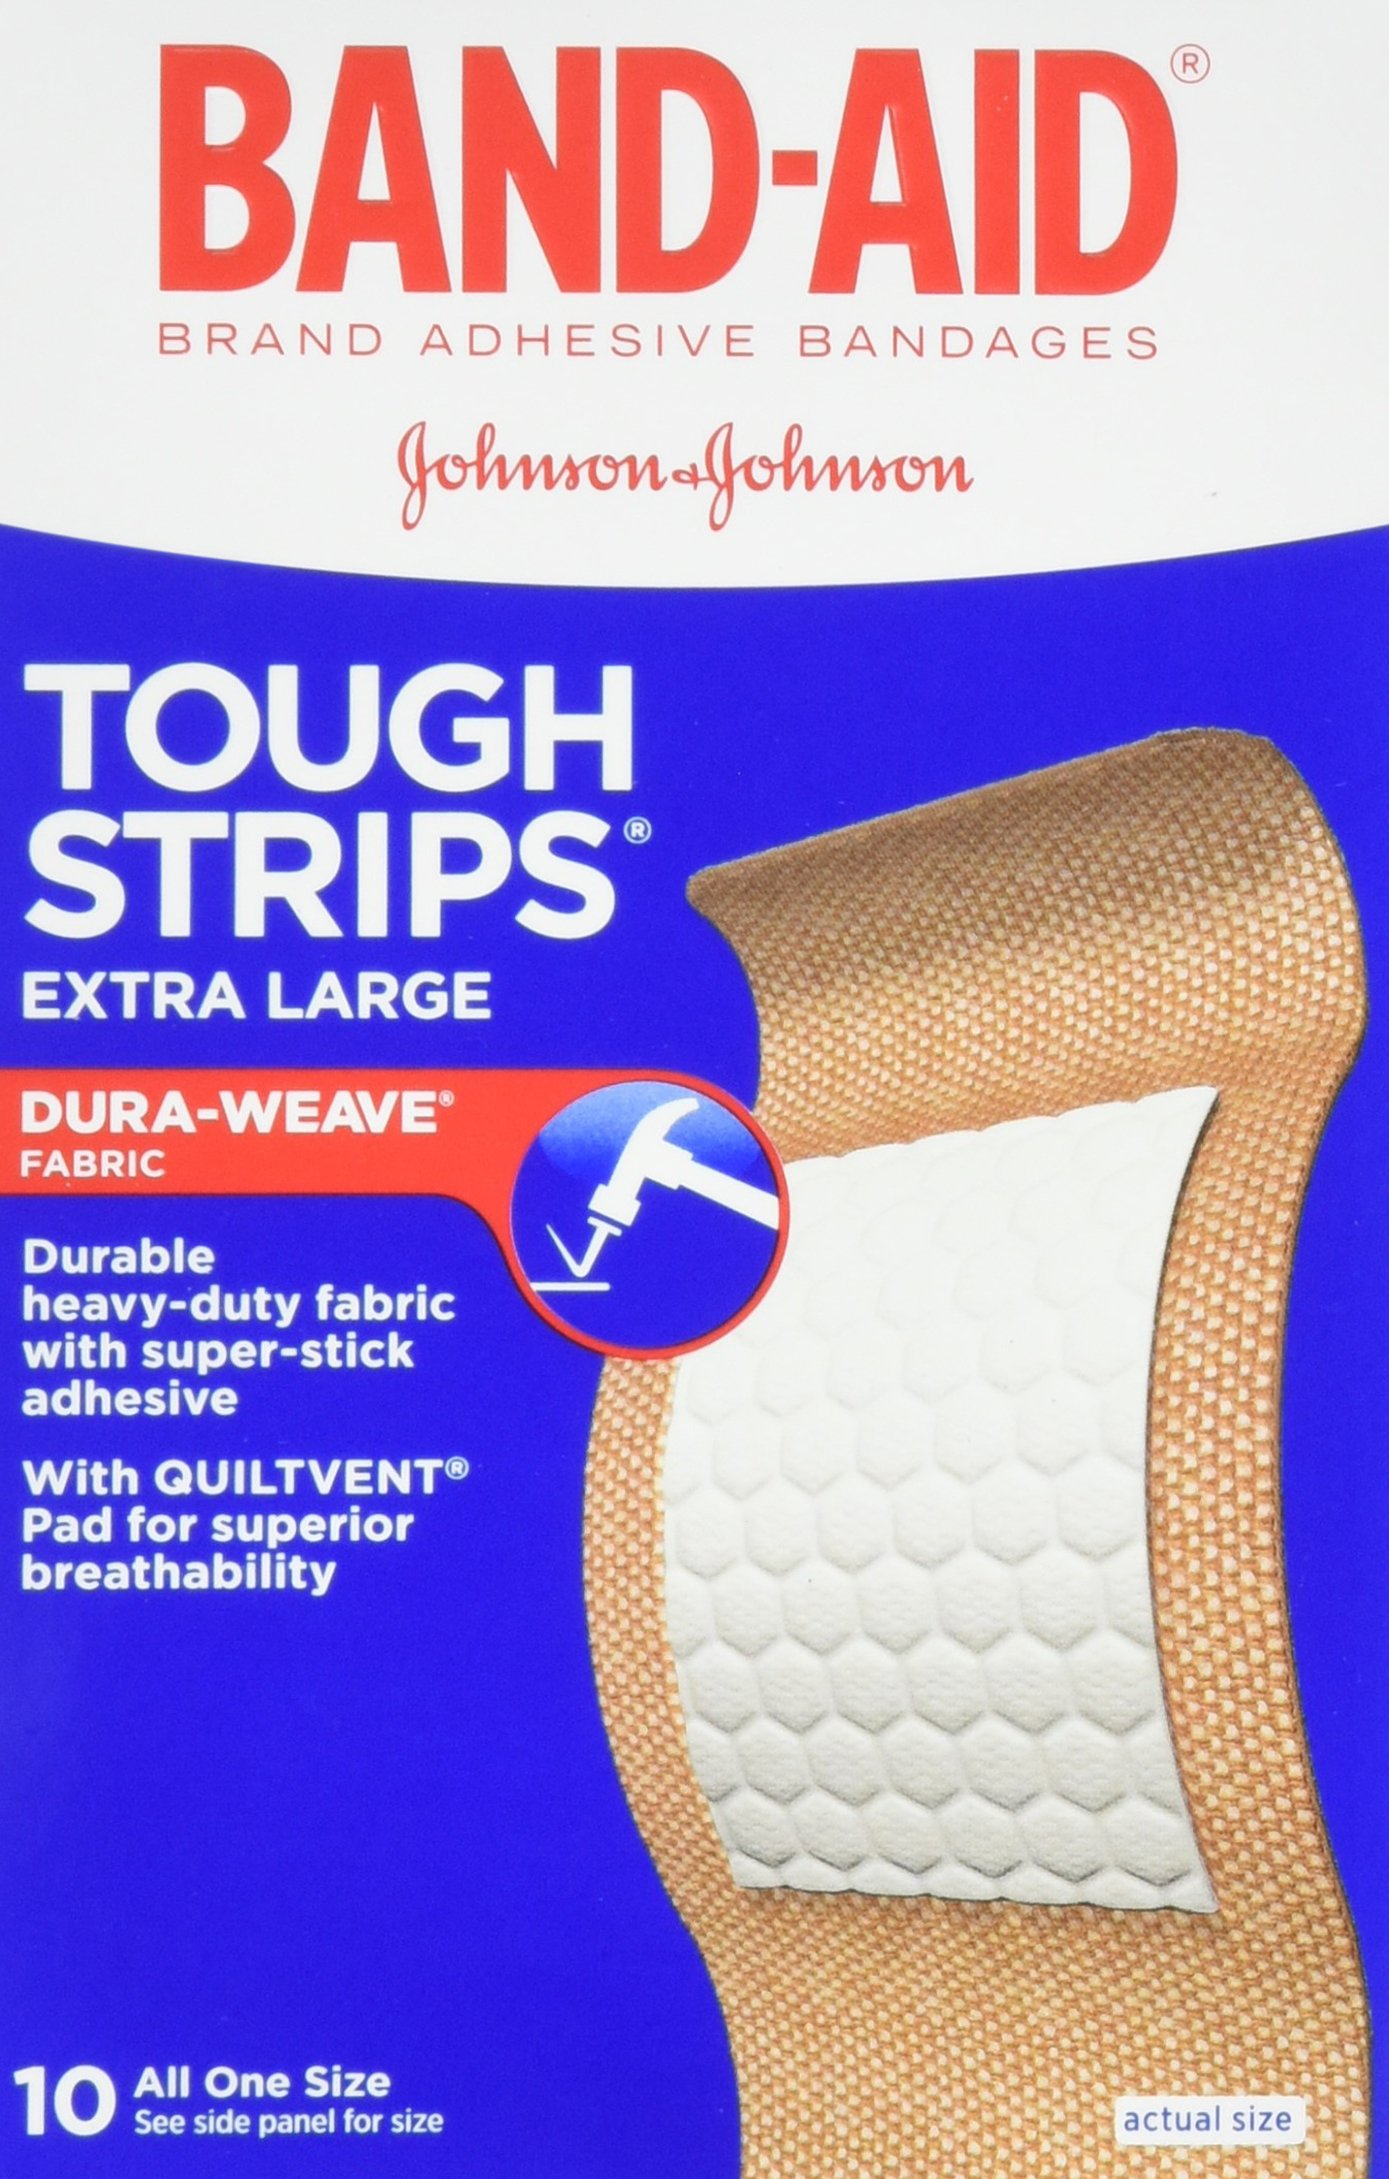 Band-Aid Brand Adhesive Bandages, Tough-Strips, Extra Large (1.75-Inch Wide), 10-Count Bandages (Pack of 6) by Band-Aid (Image #1)